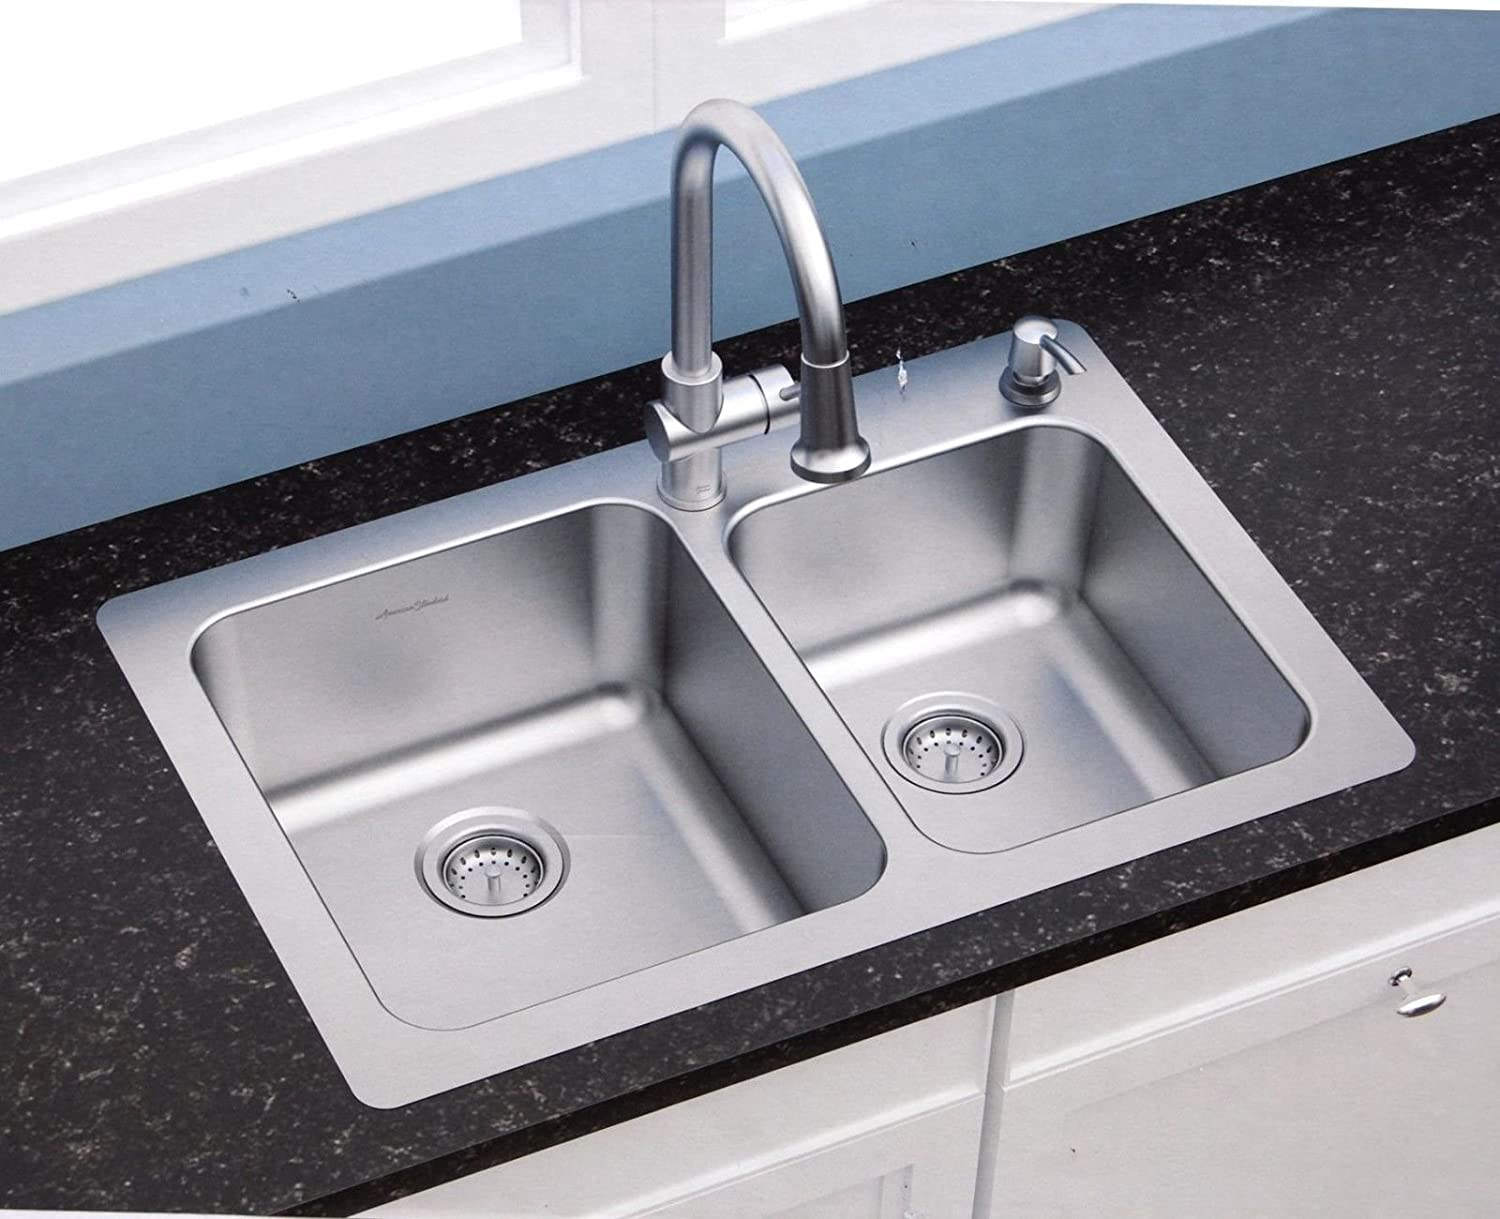 American Standard 18 gauge 33 x 22 Stainless Steel Kitchen Sink with ...